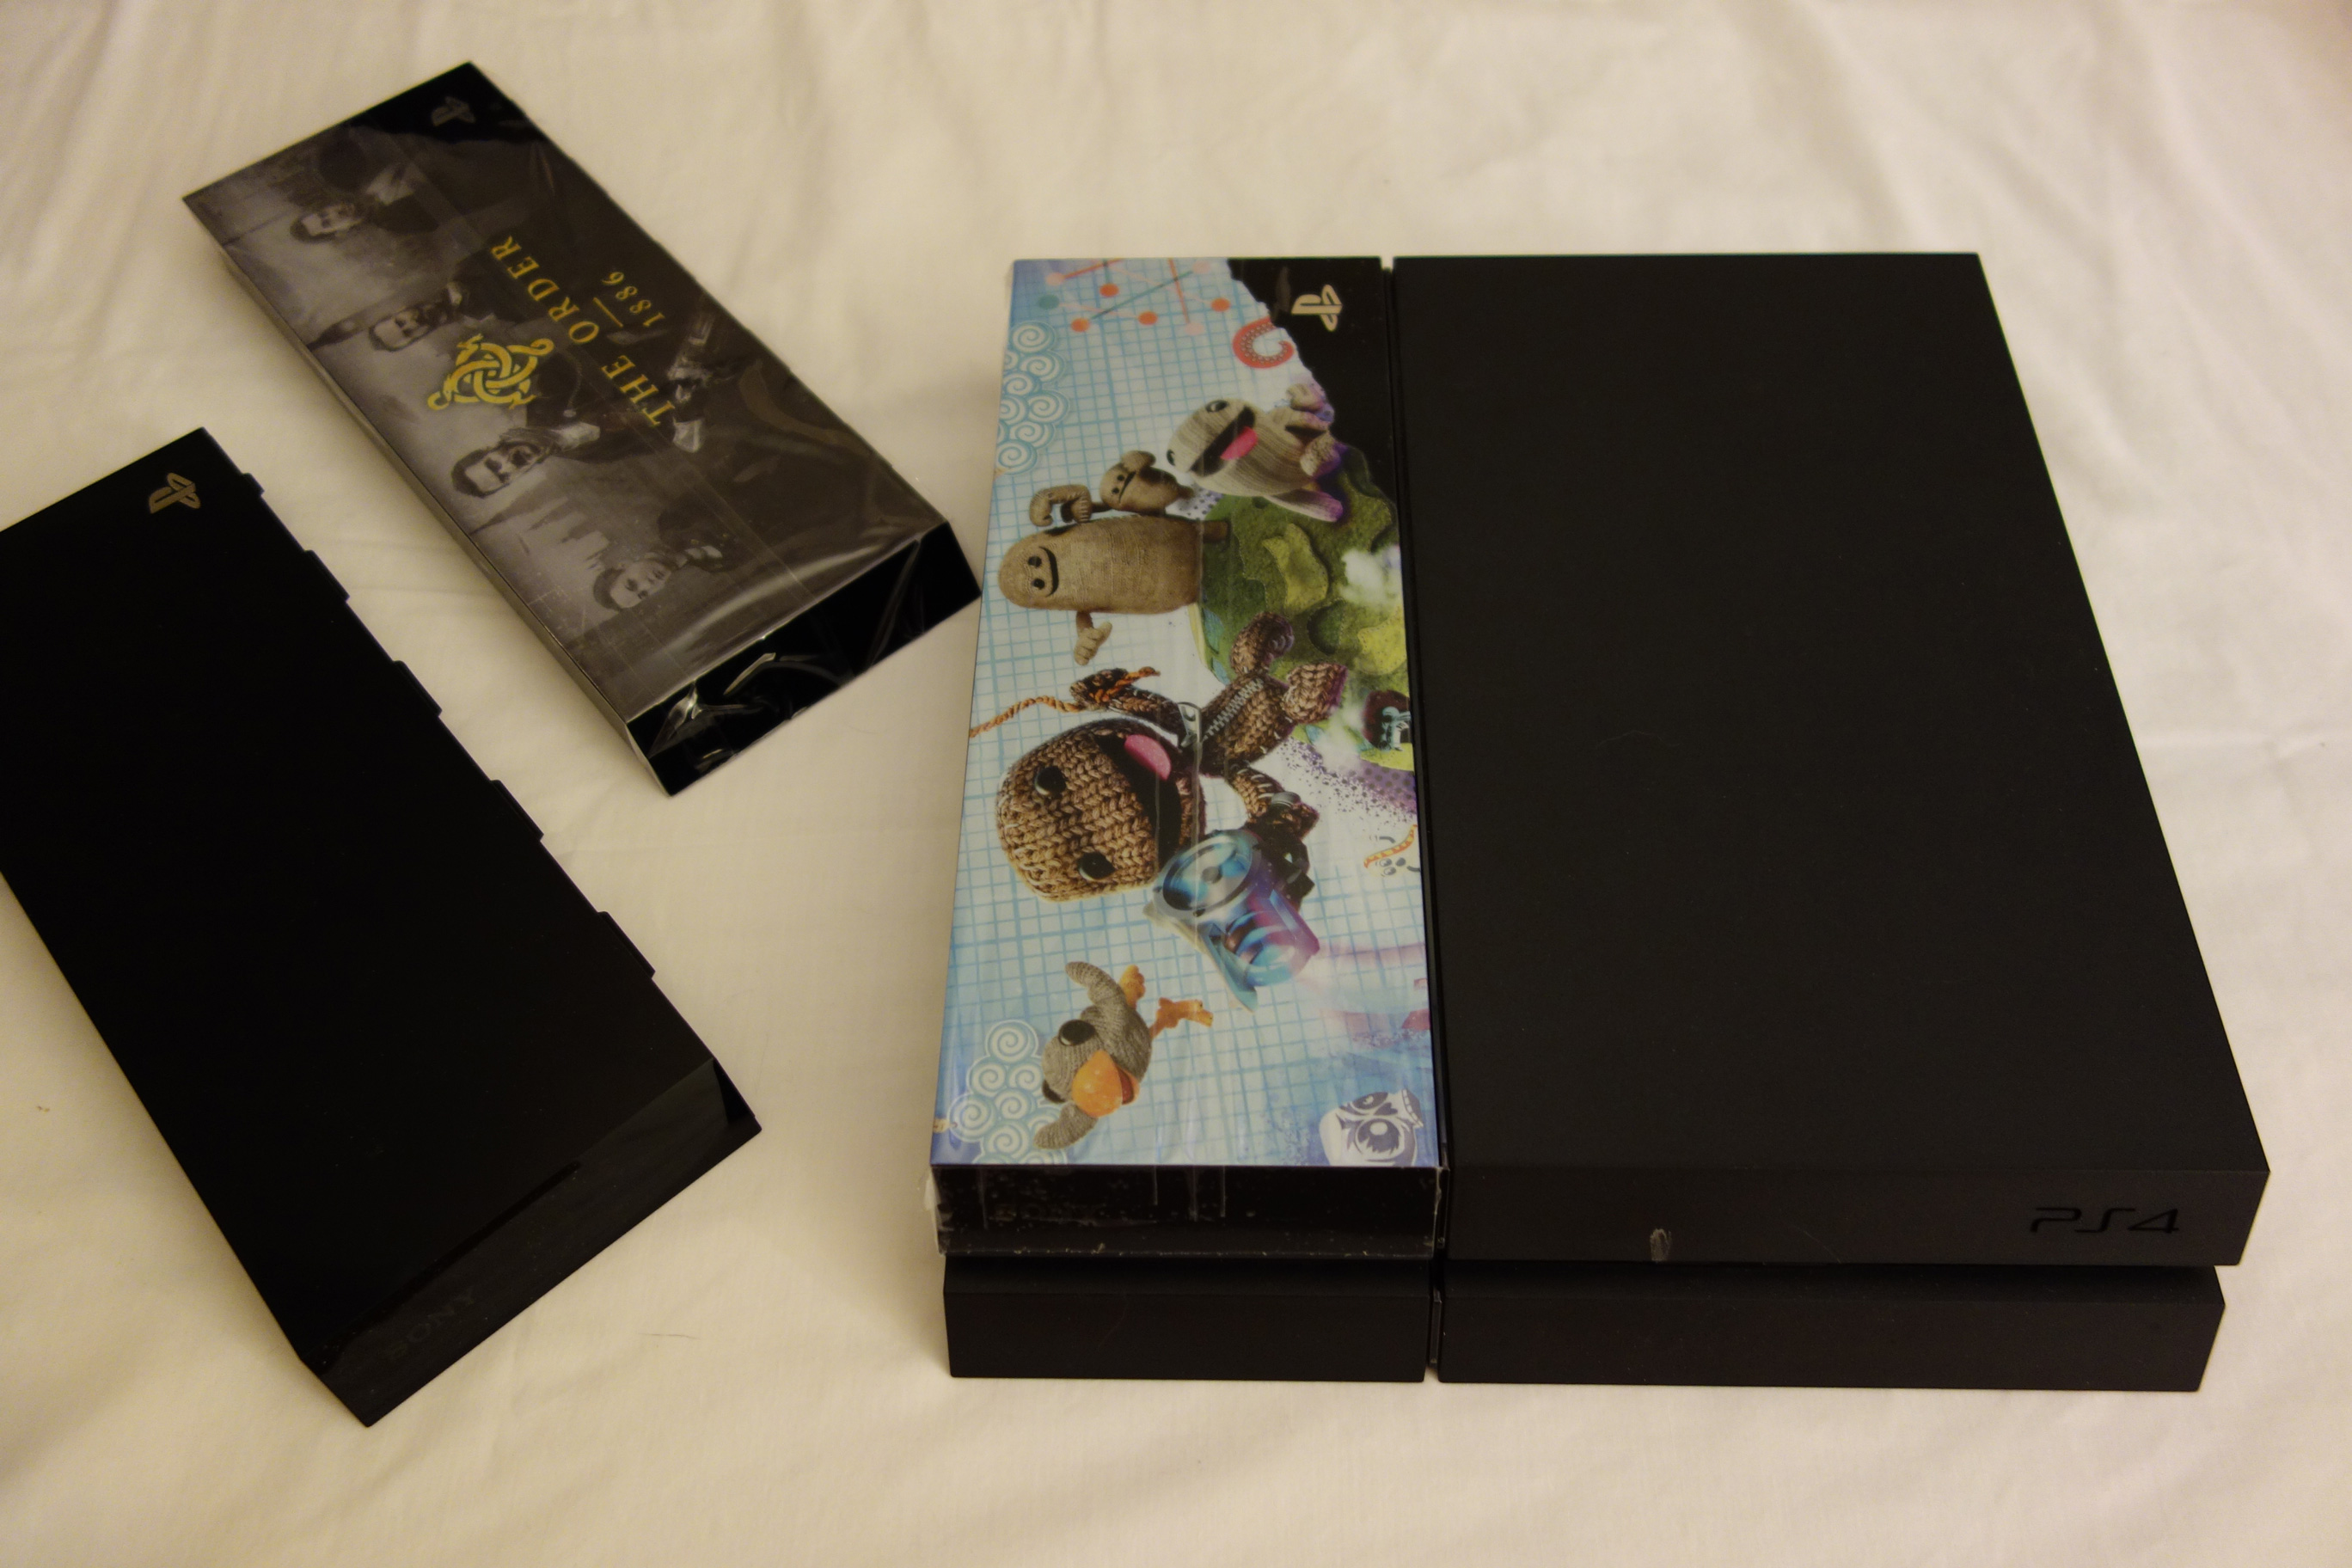 Project Skylight Limited Edition PS4 HDD Cover Faceplate